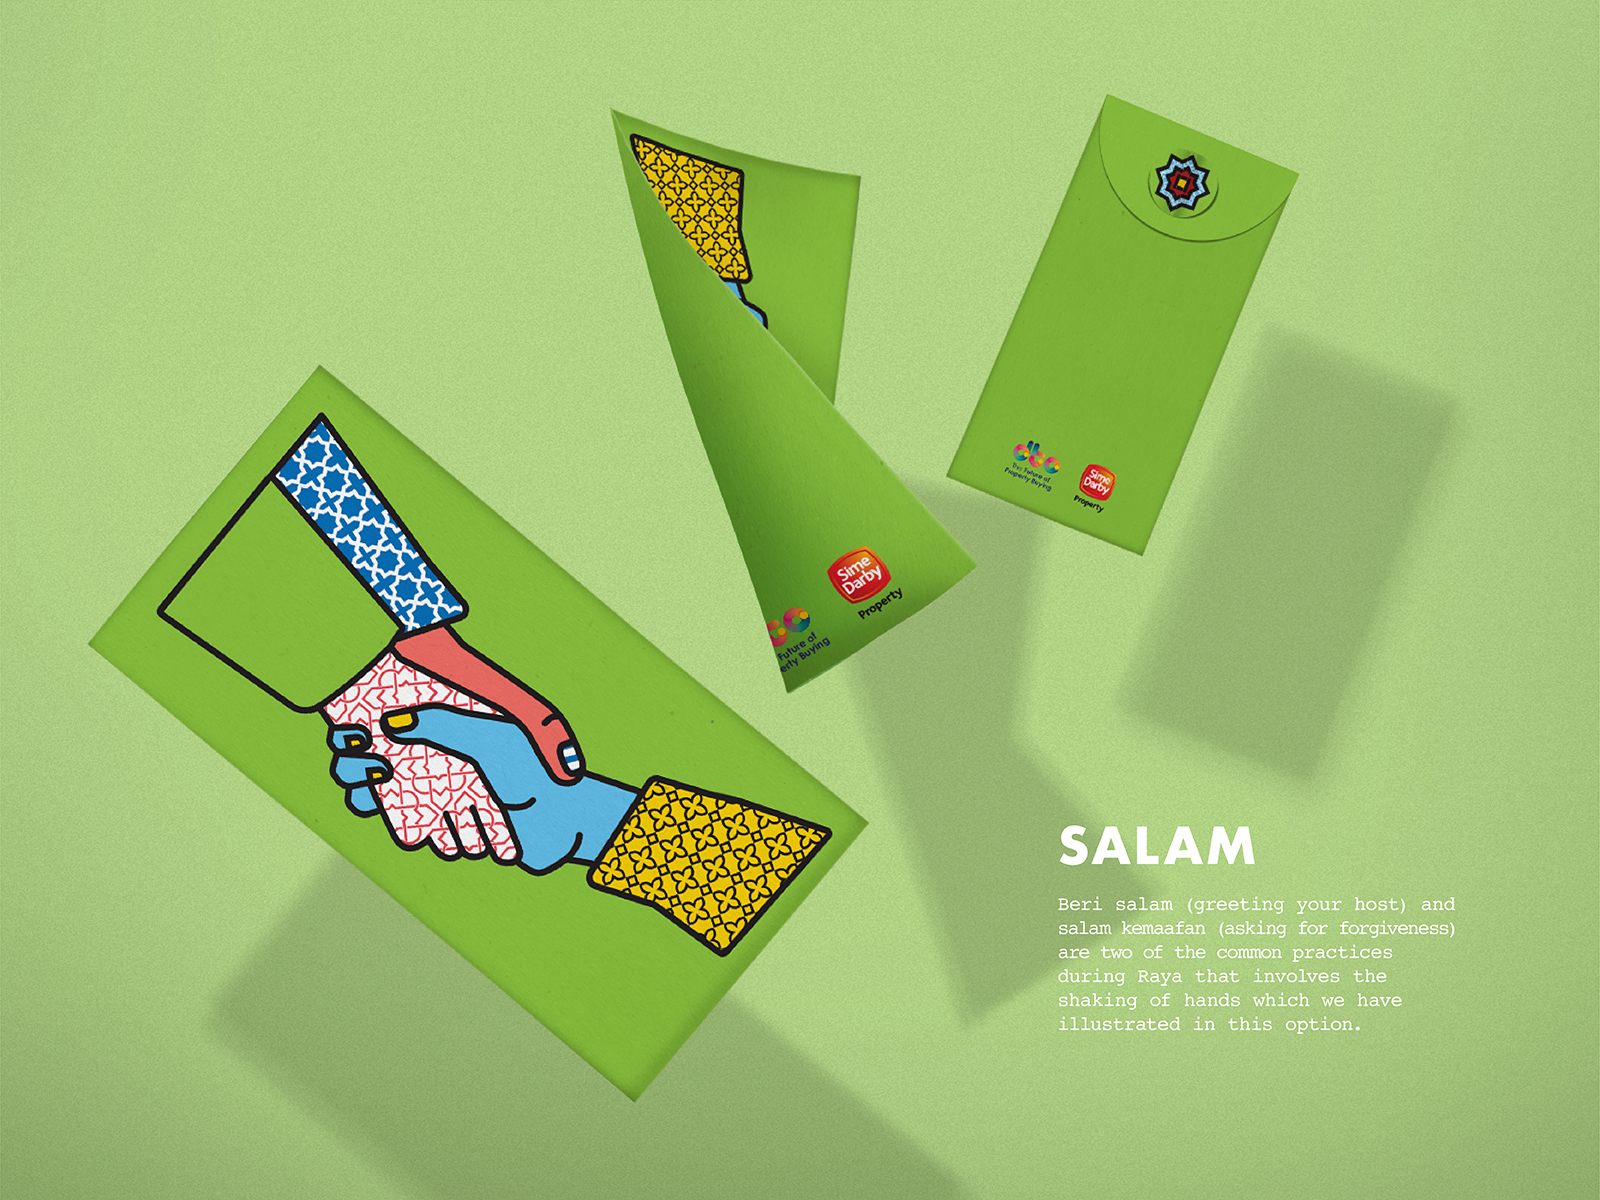 Sime Darby POPRAYA 2019 sampul or green packet design using campaign art direction featuring festive action of asking for forgiveness with hands